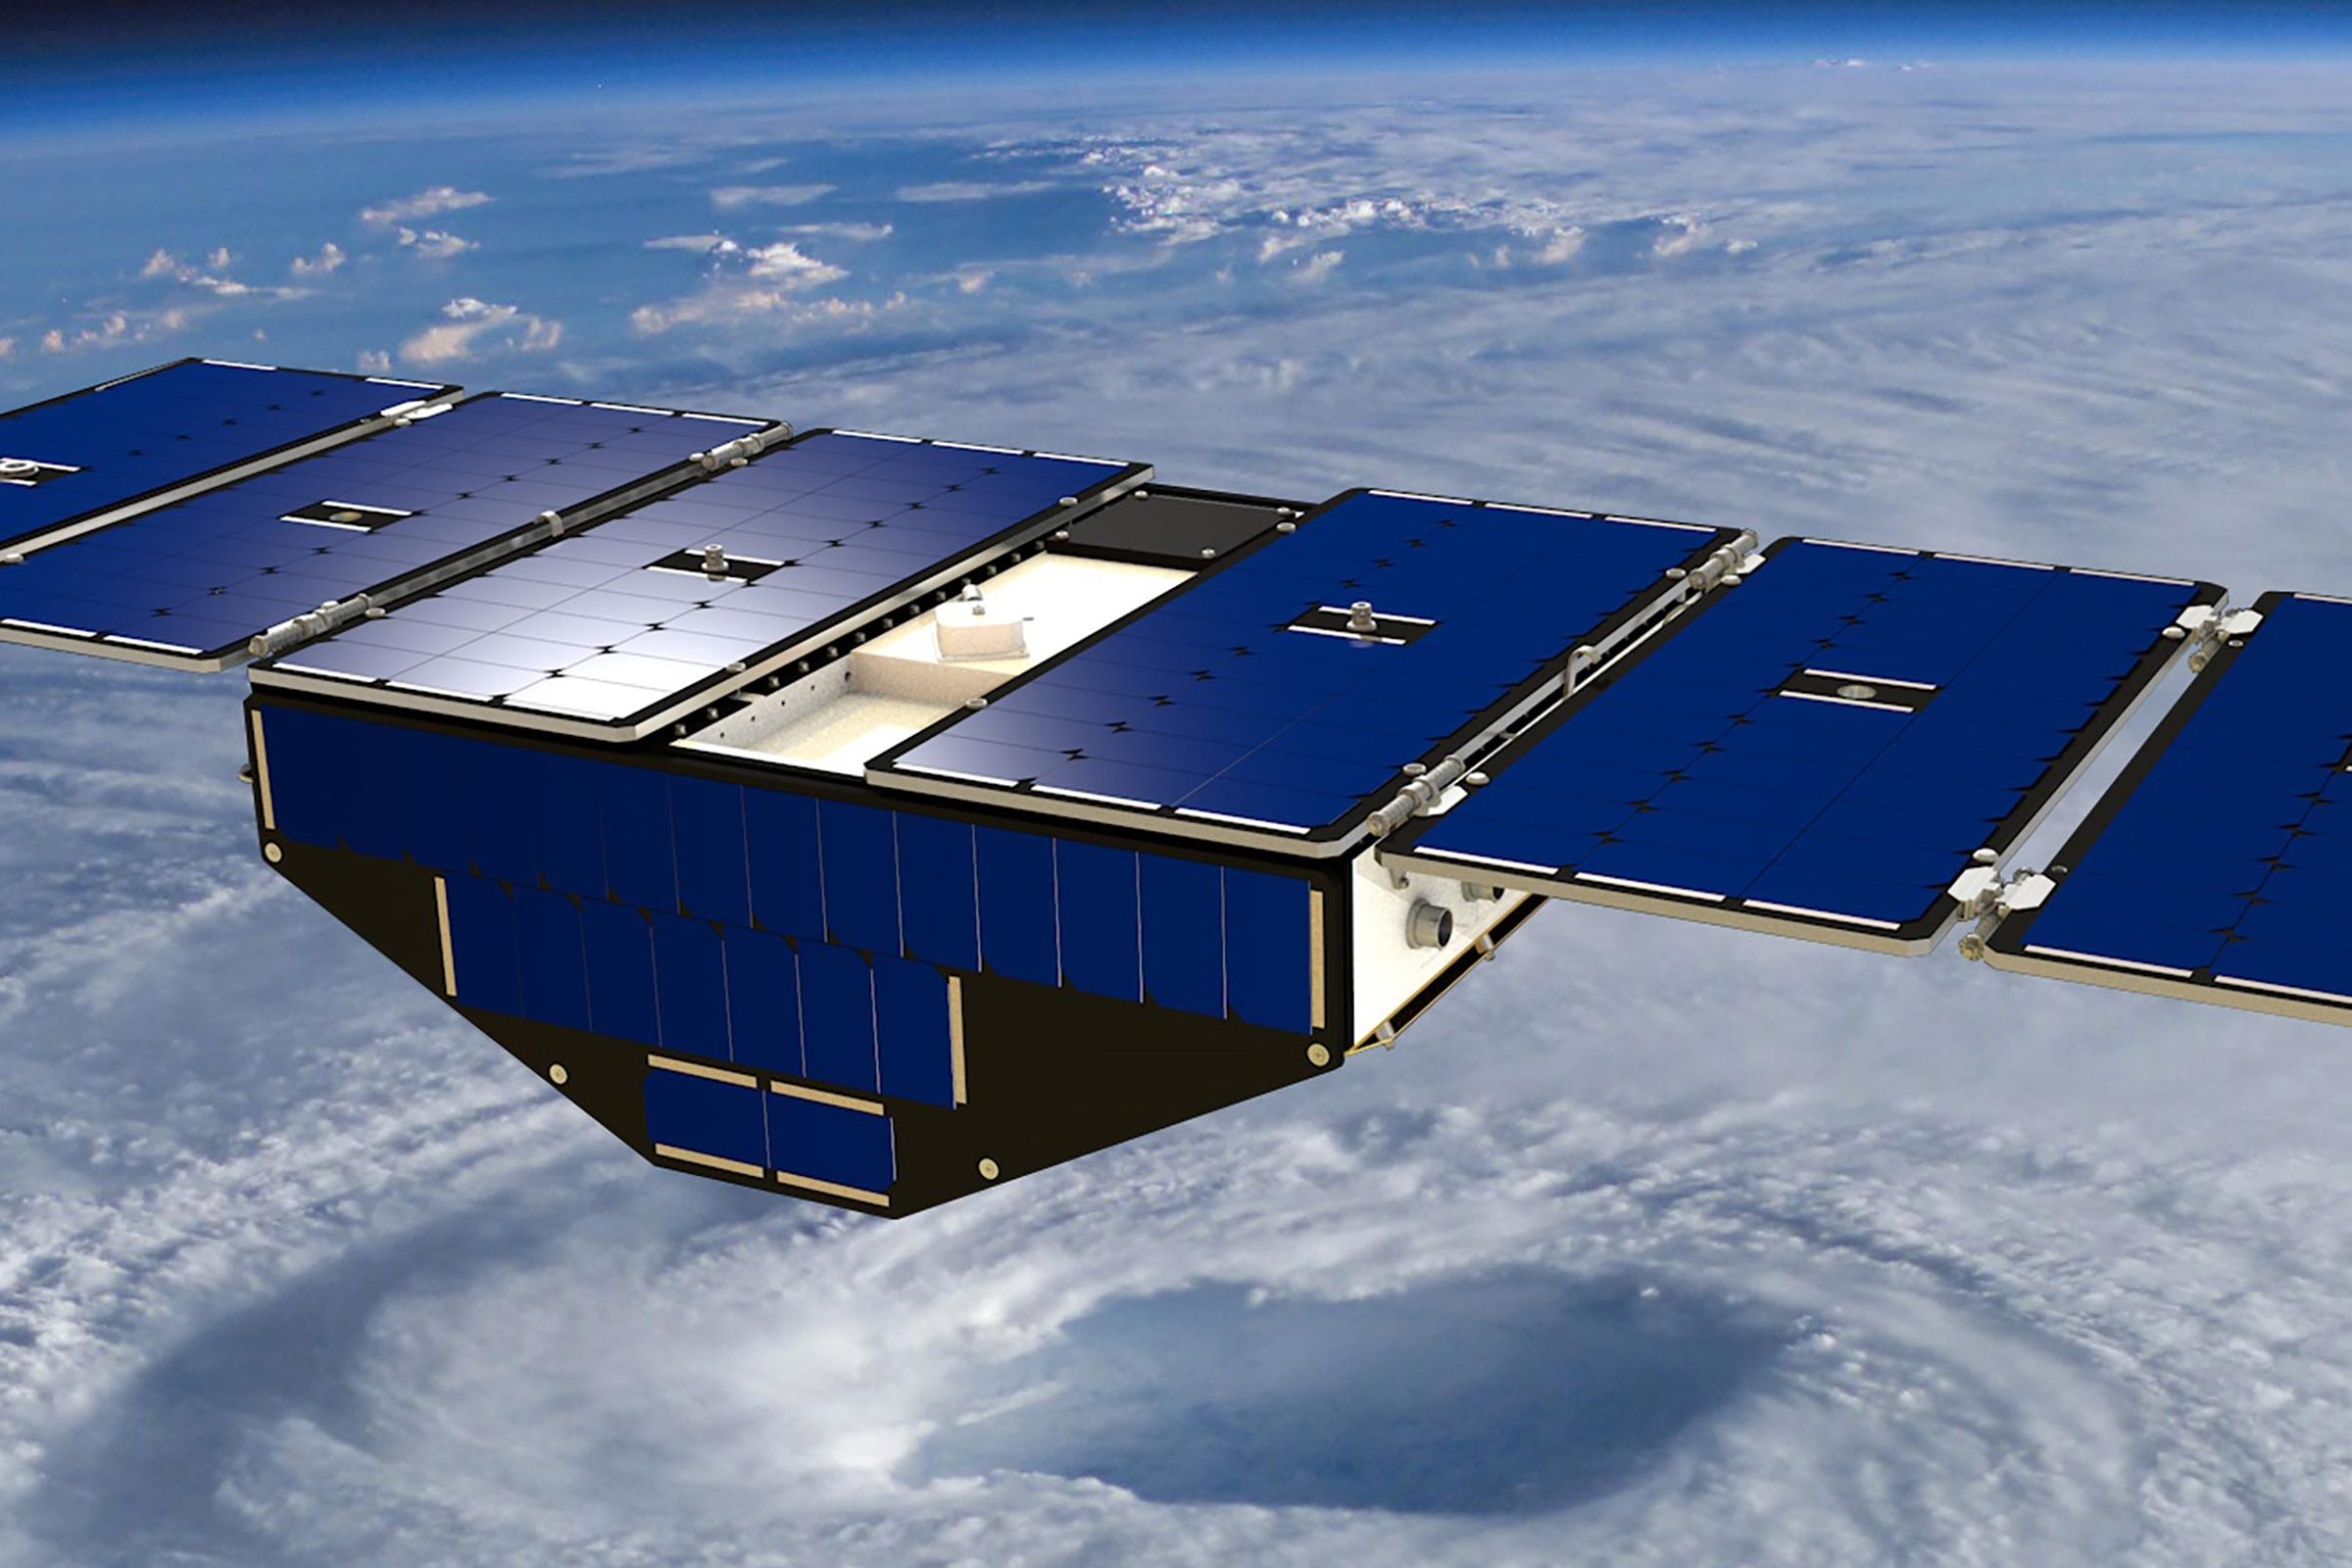 Visualization of a CYGNSS satellite